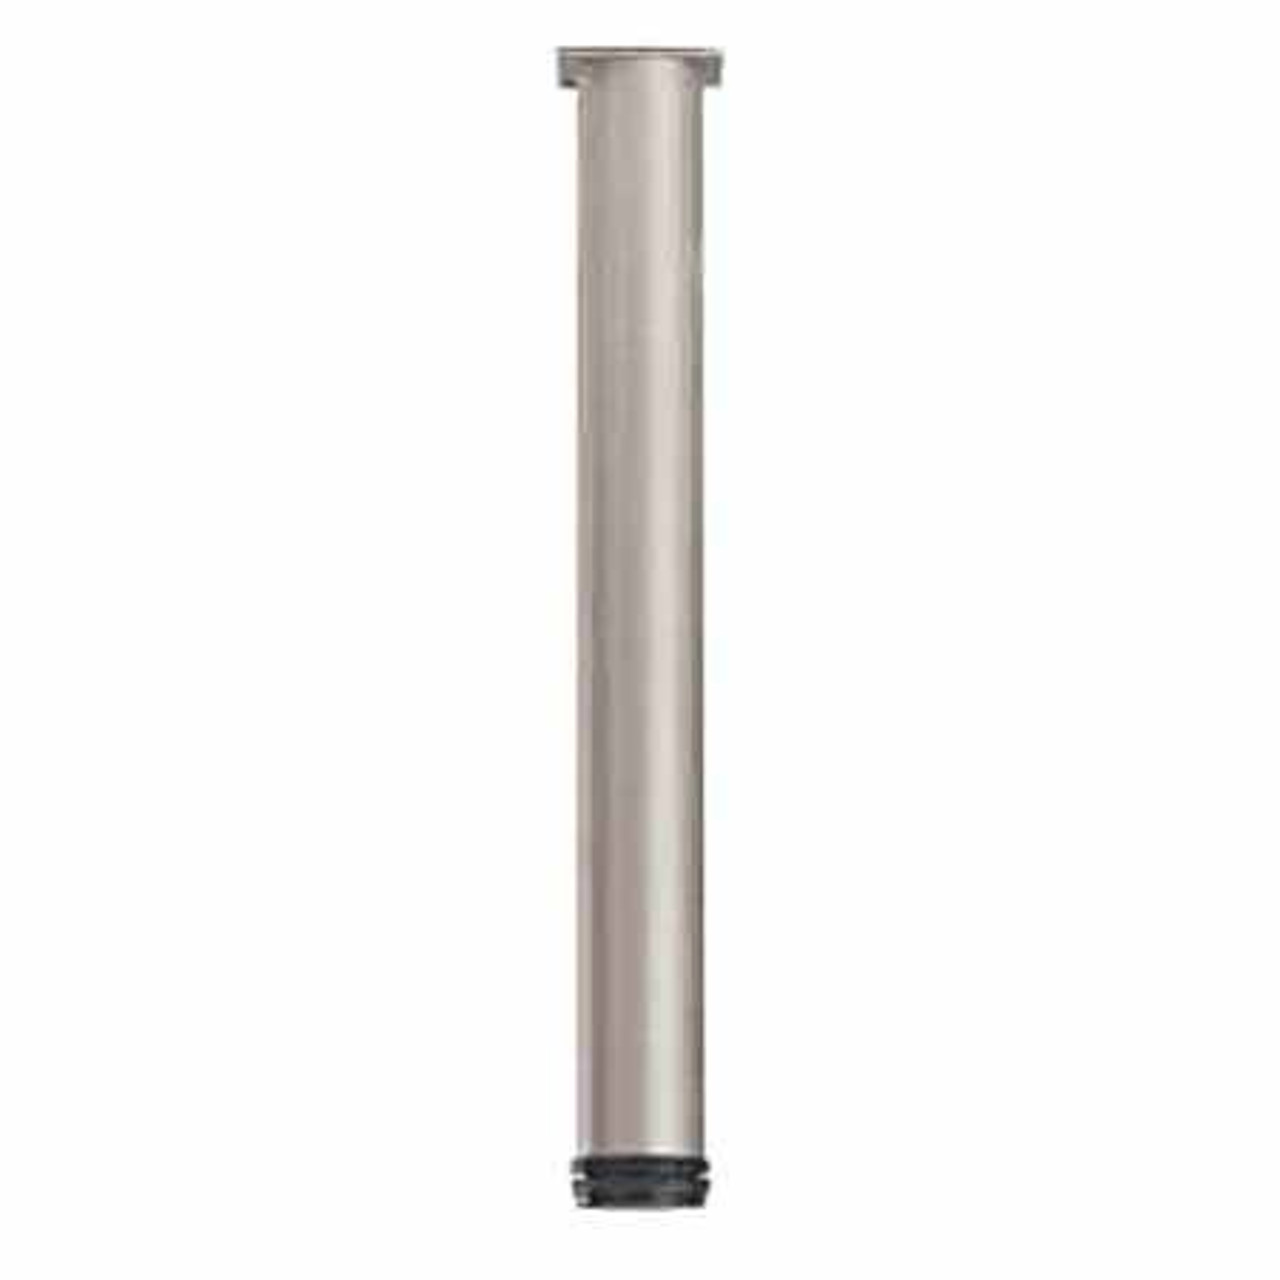 Picture of: 17 3 4 Adjustable Coffee Leg D50m 450